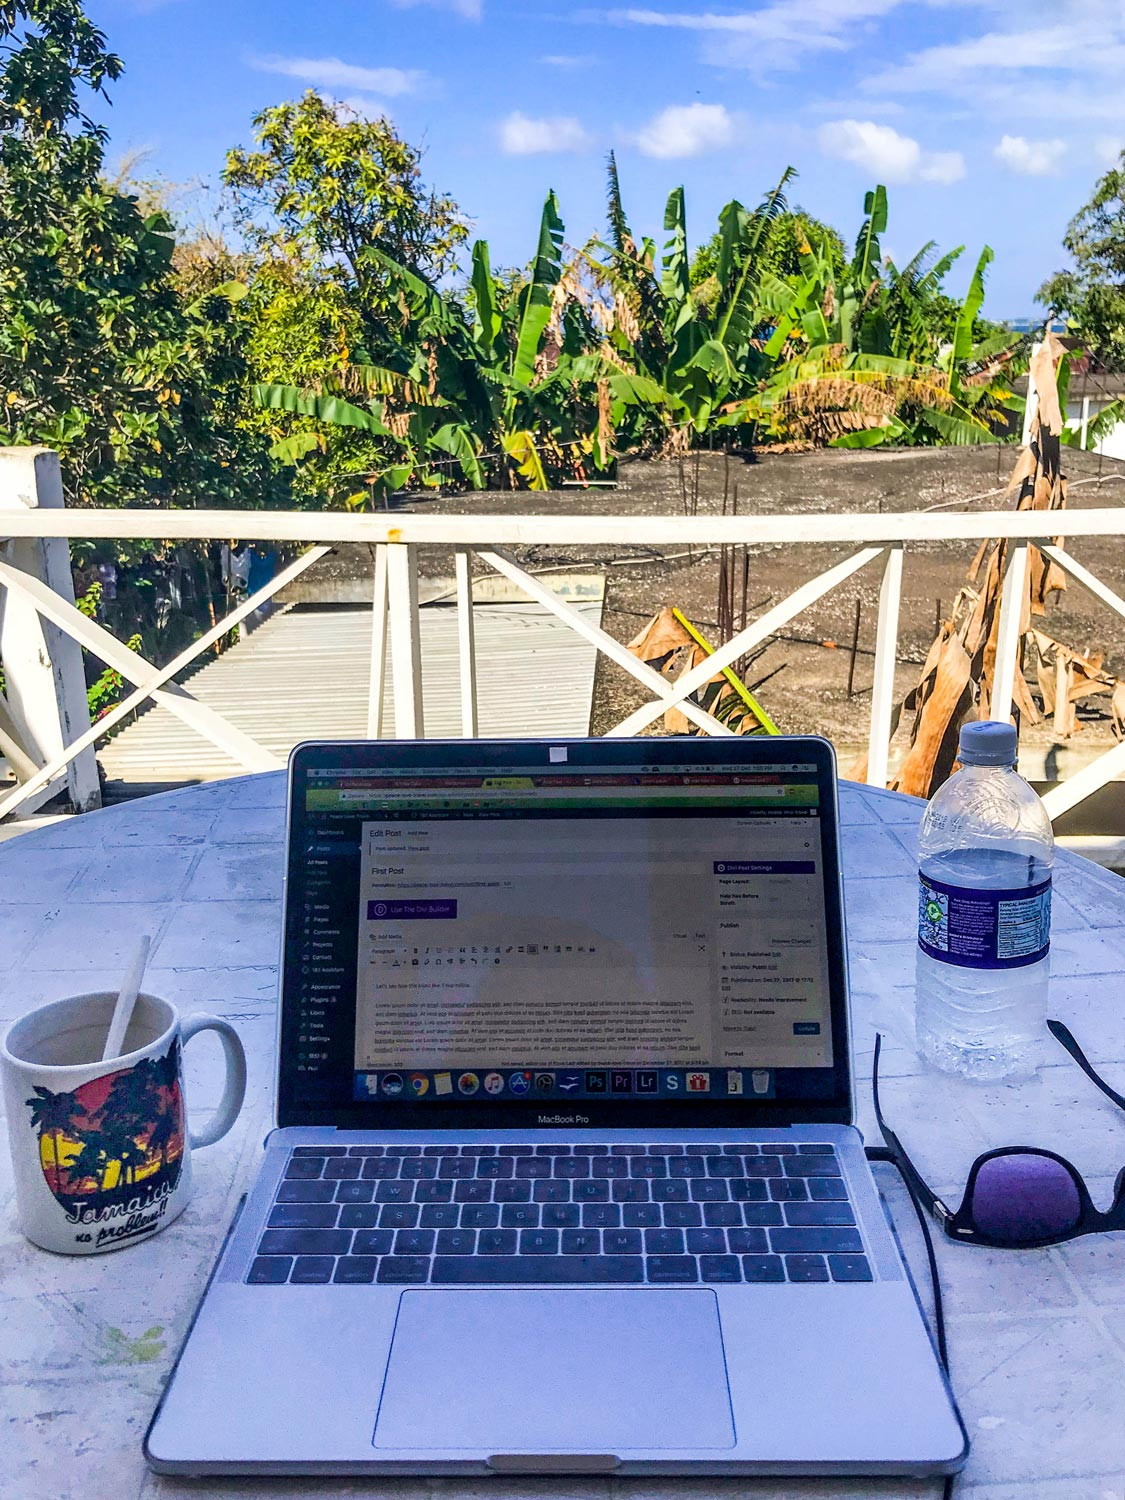 Laptop, tea cup and sunglasses on table with view of palmtrees and blue sky in West End, Jamaica